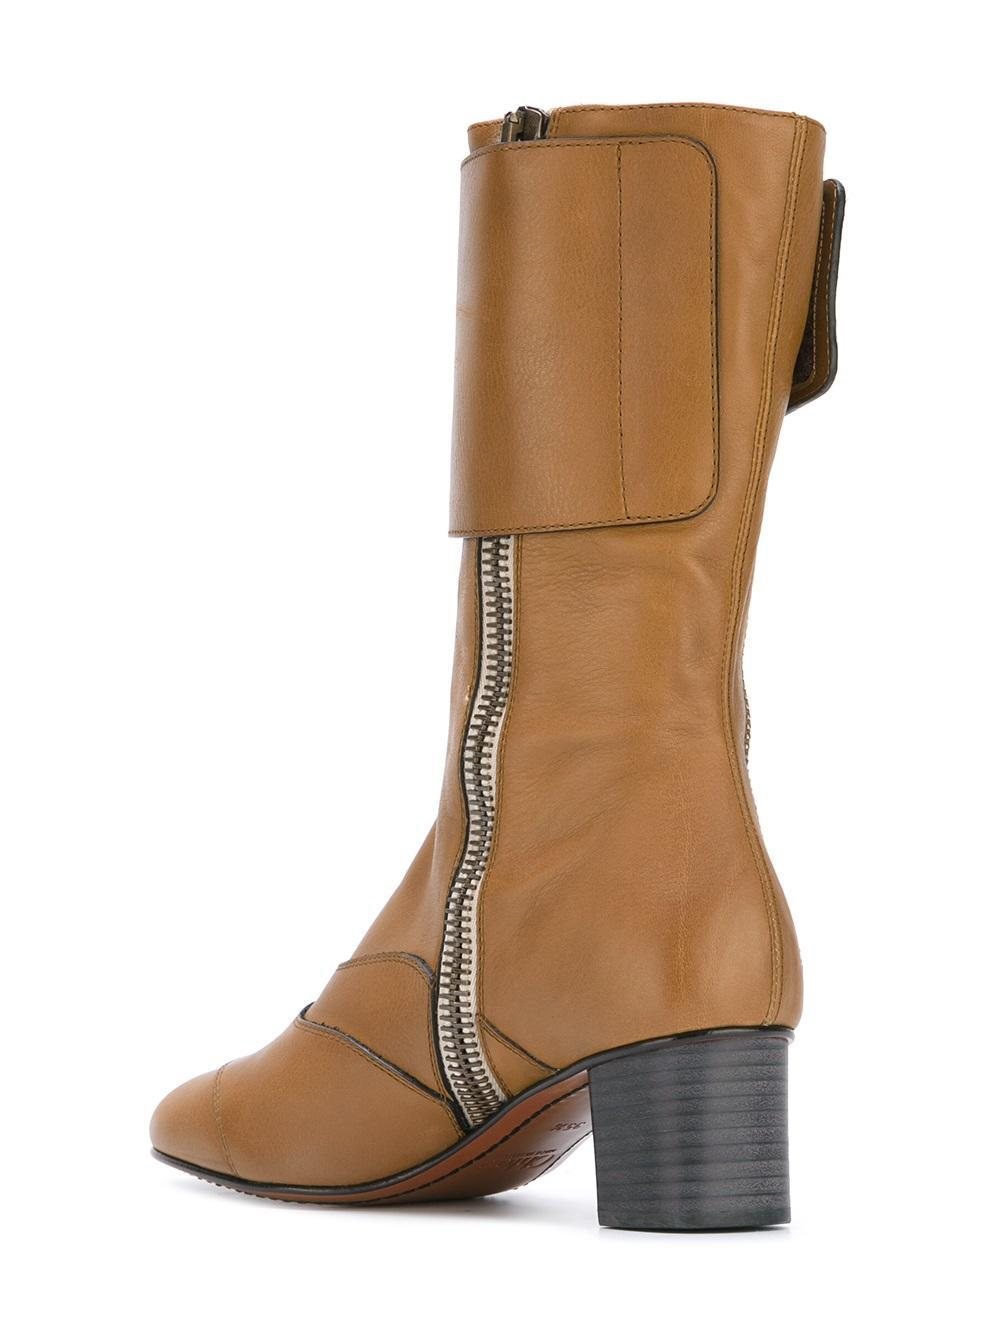 Chloé Lexie Leather Mid-calf Boots in Green